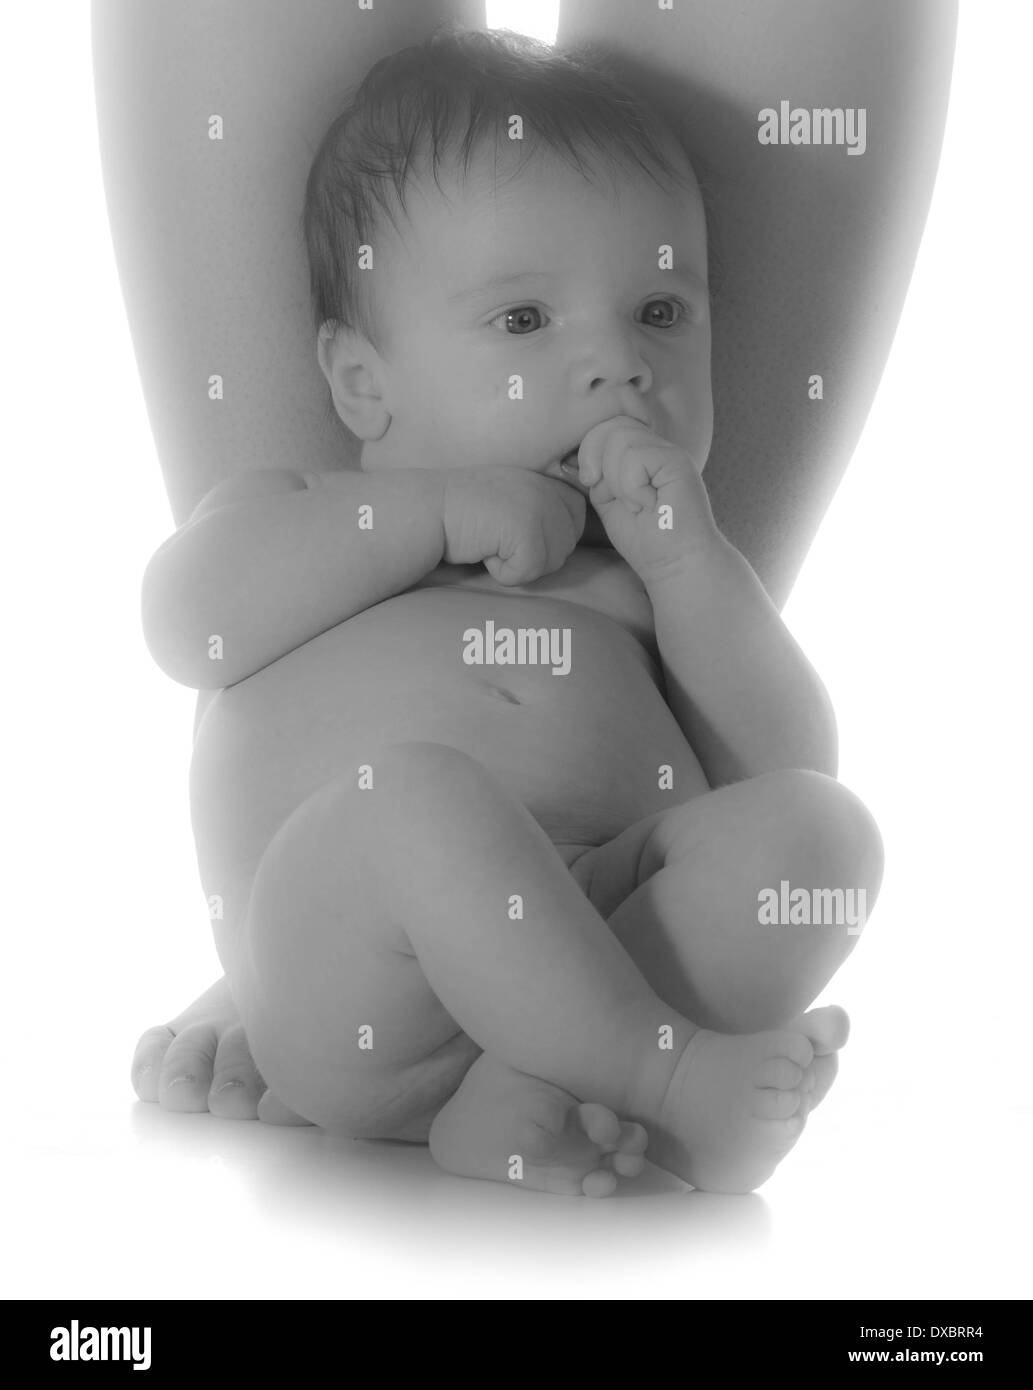 newborn baby sitting by mom's feet isolated in black and white - Stock Image